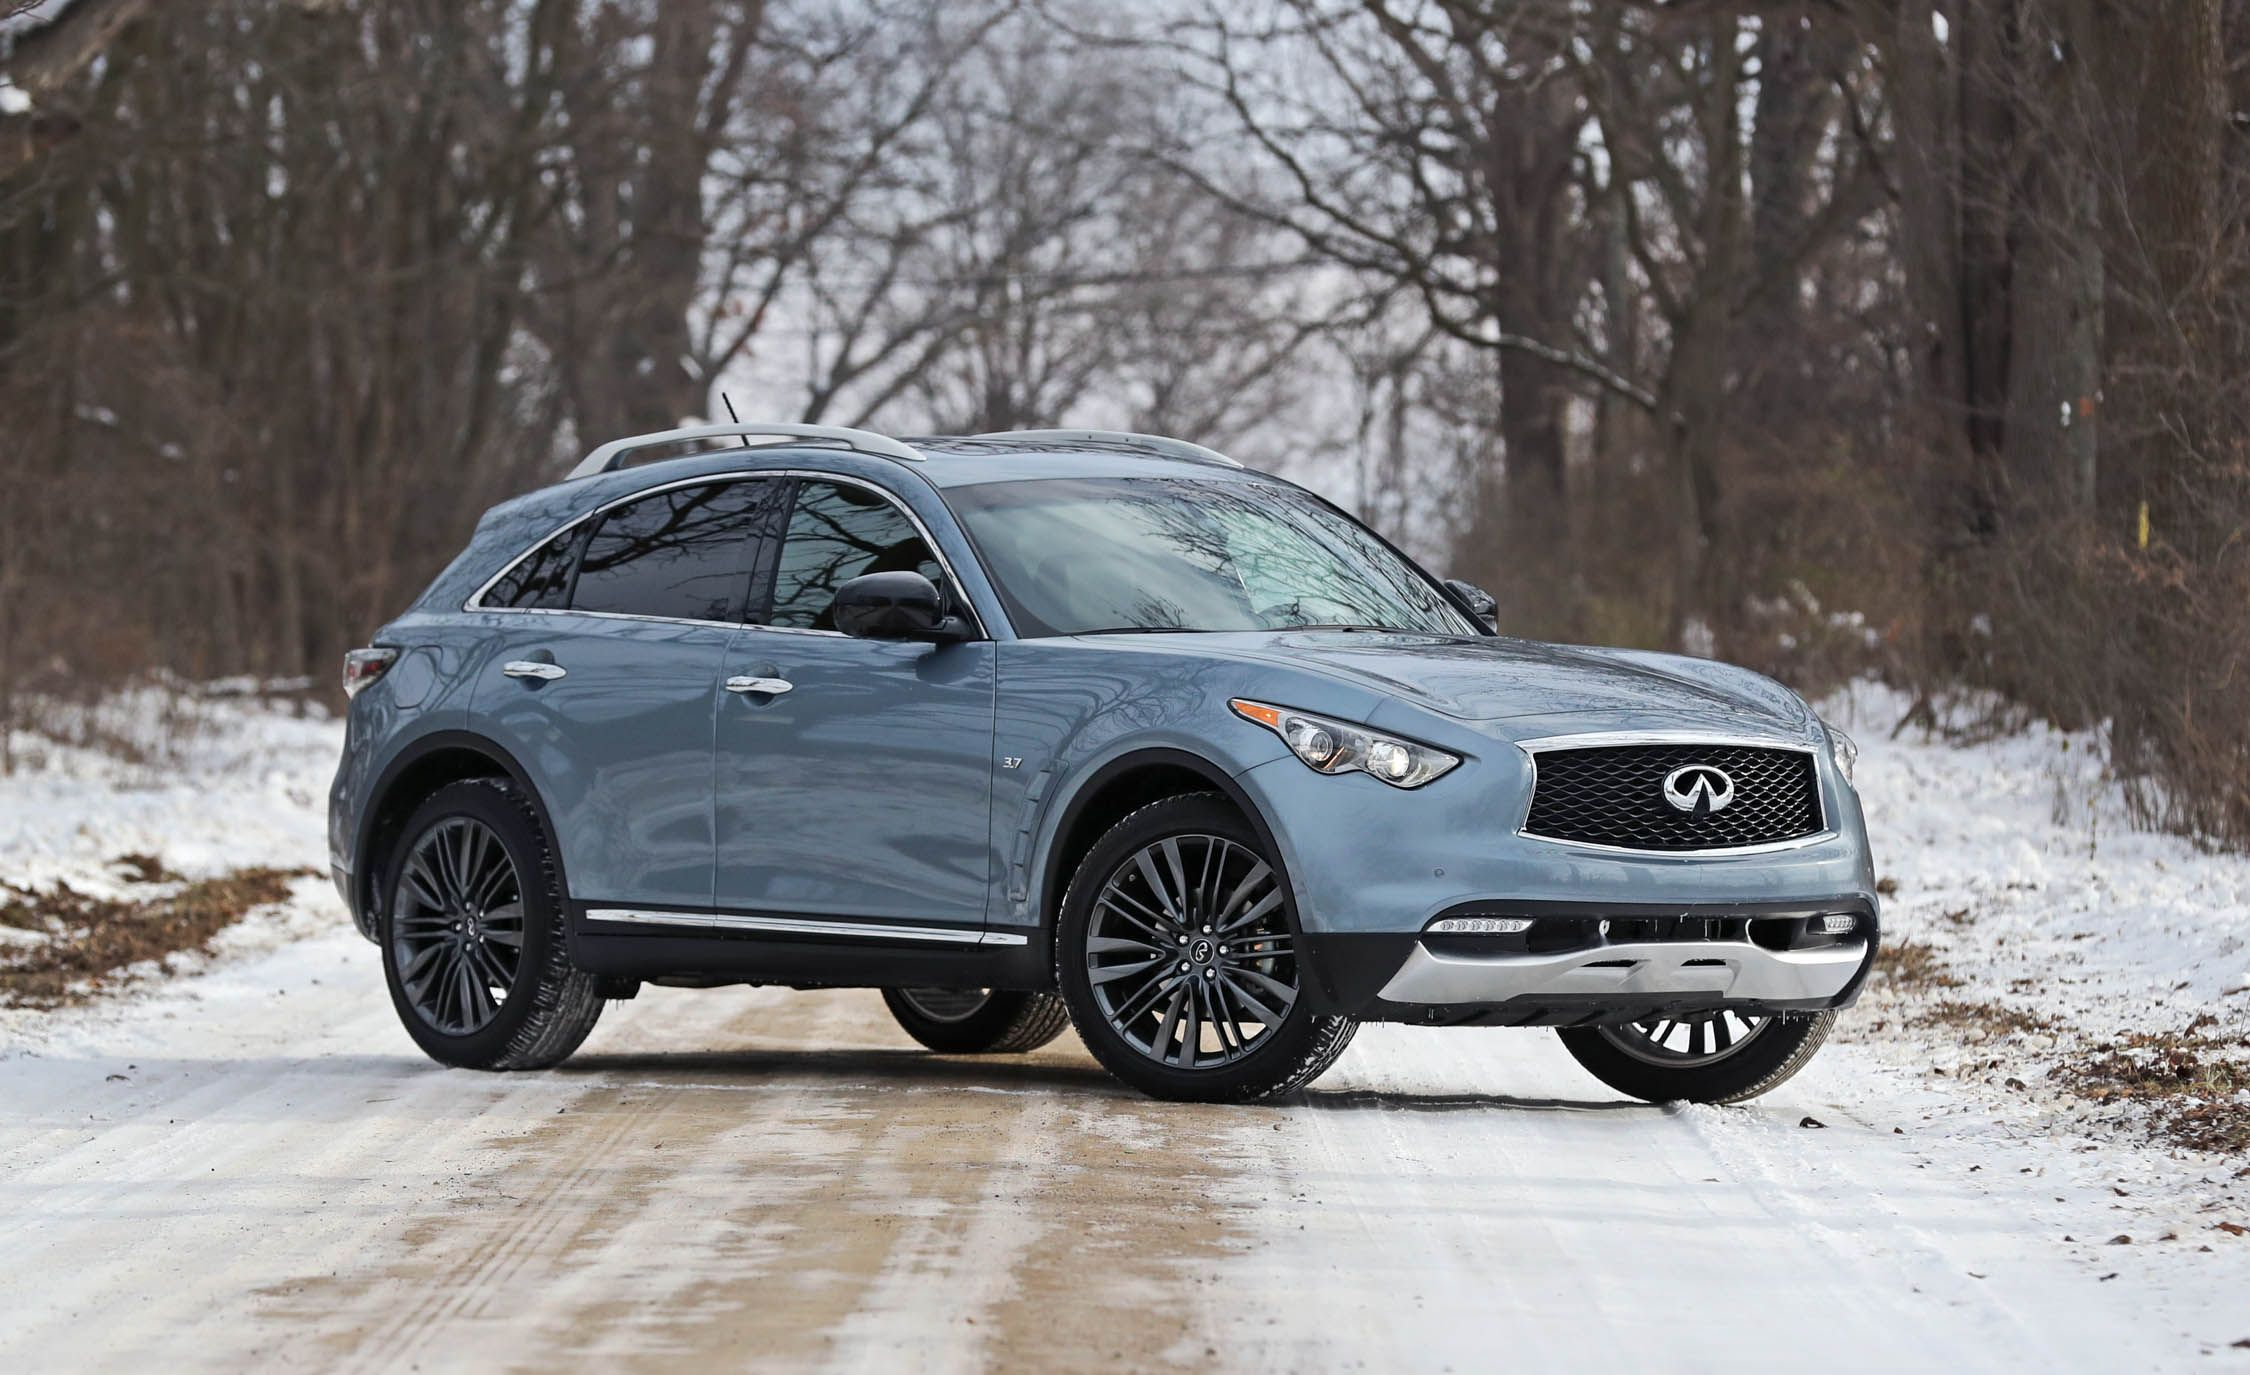 Infiniti Killing Qx70 Suv As Of 2018 Model Year News Car And Driver